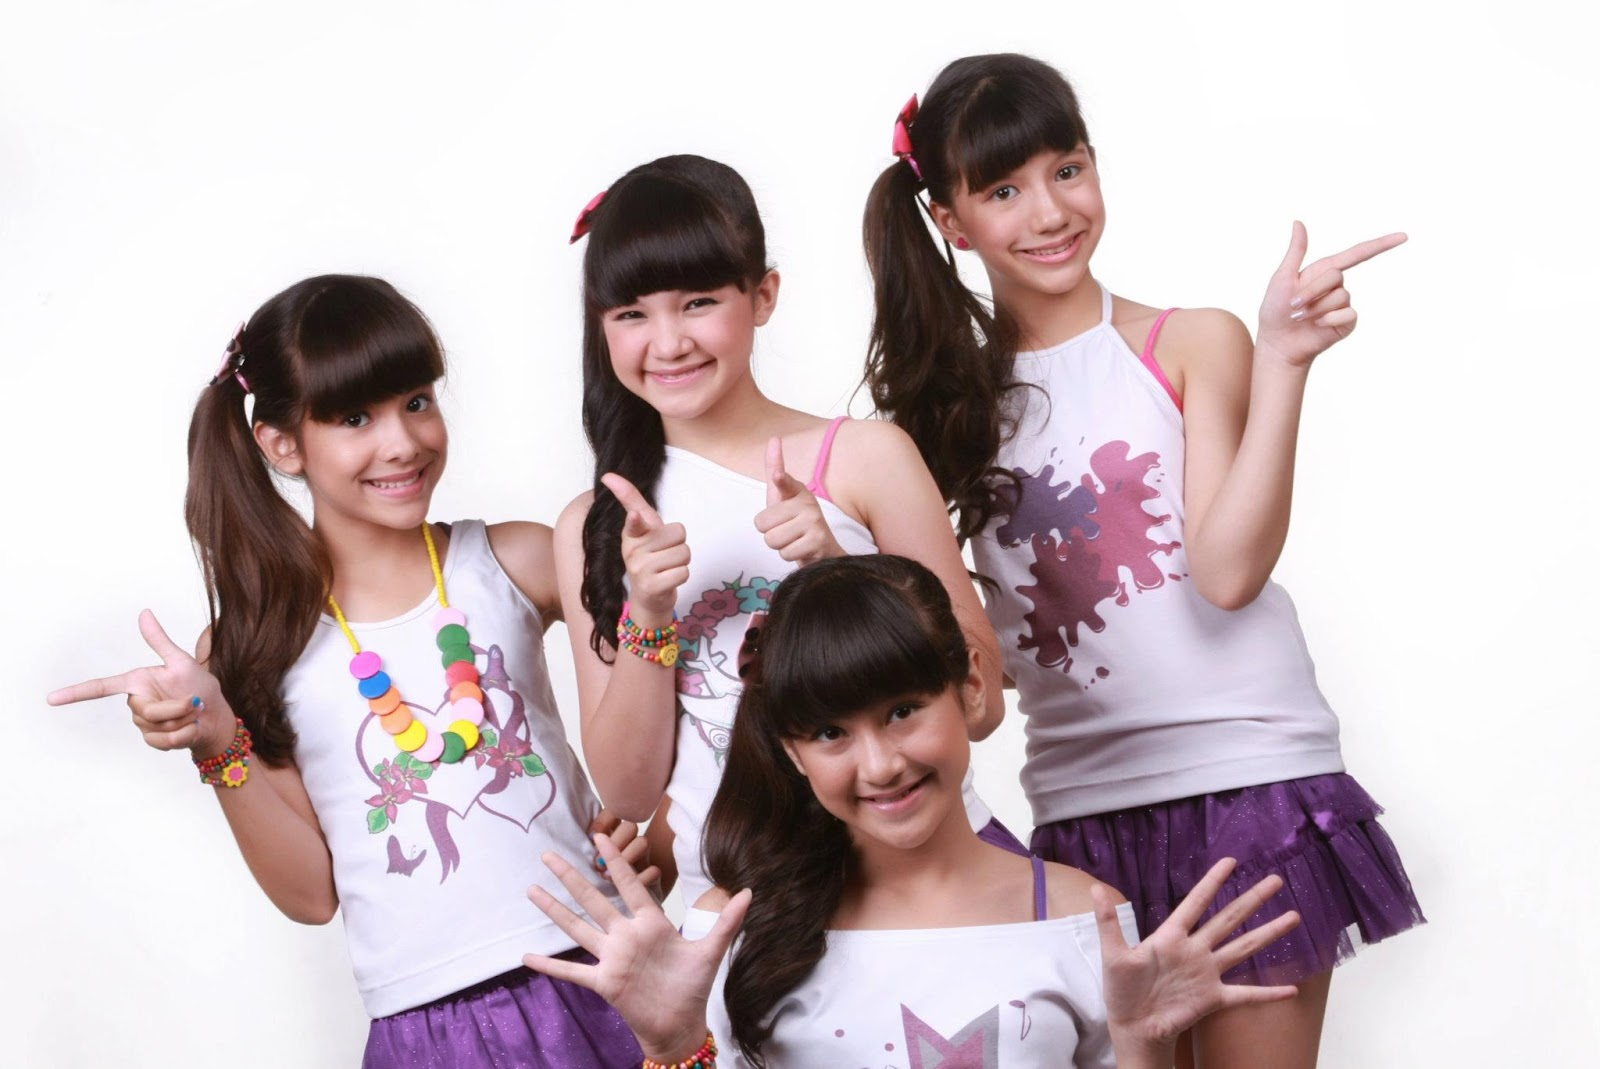 ... bella graceva amanda putri bella bassara sharon sahertian sharon